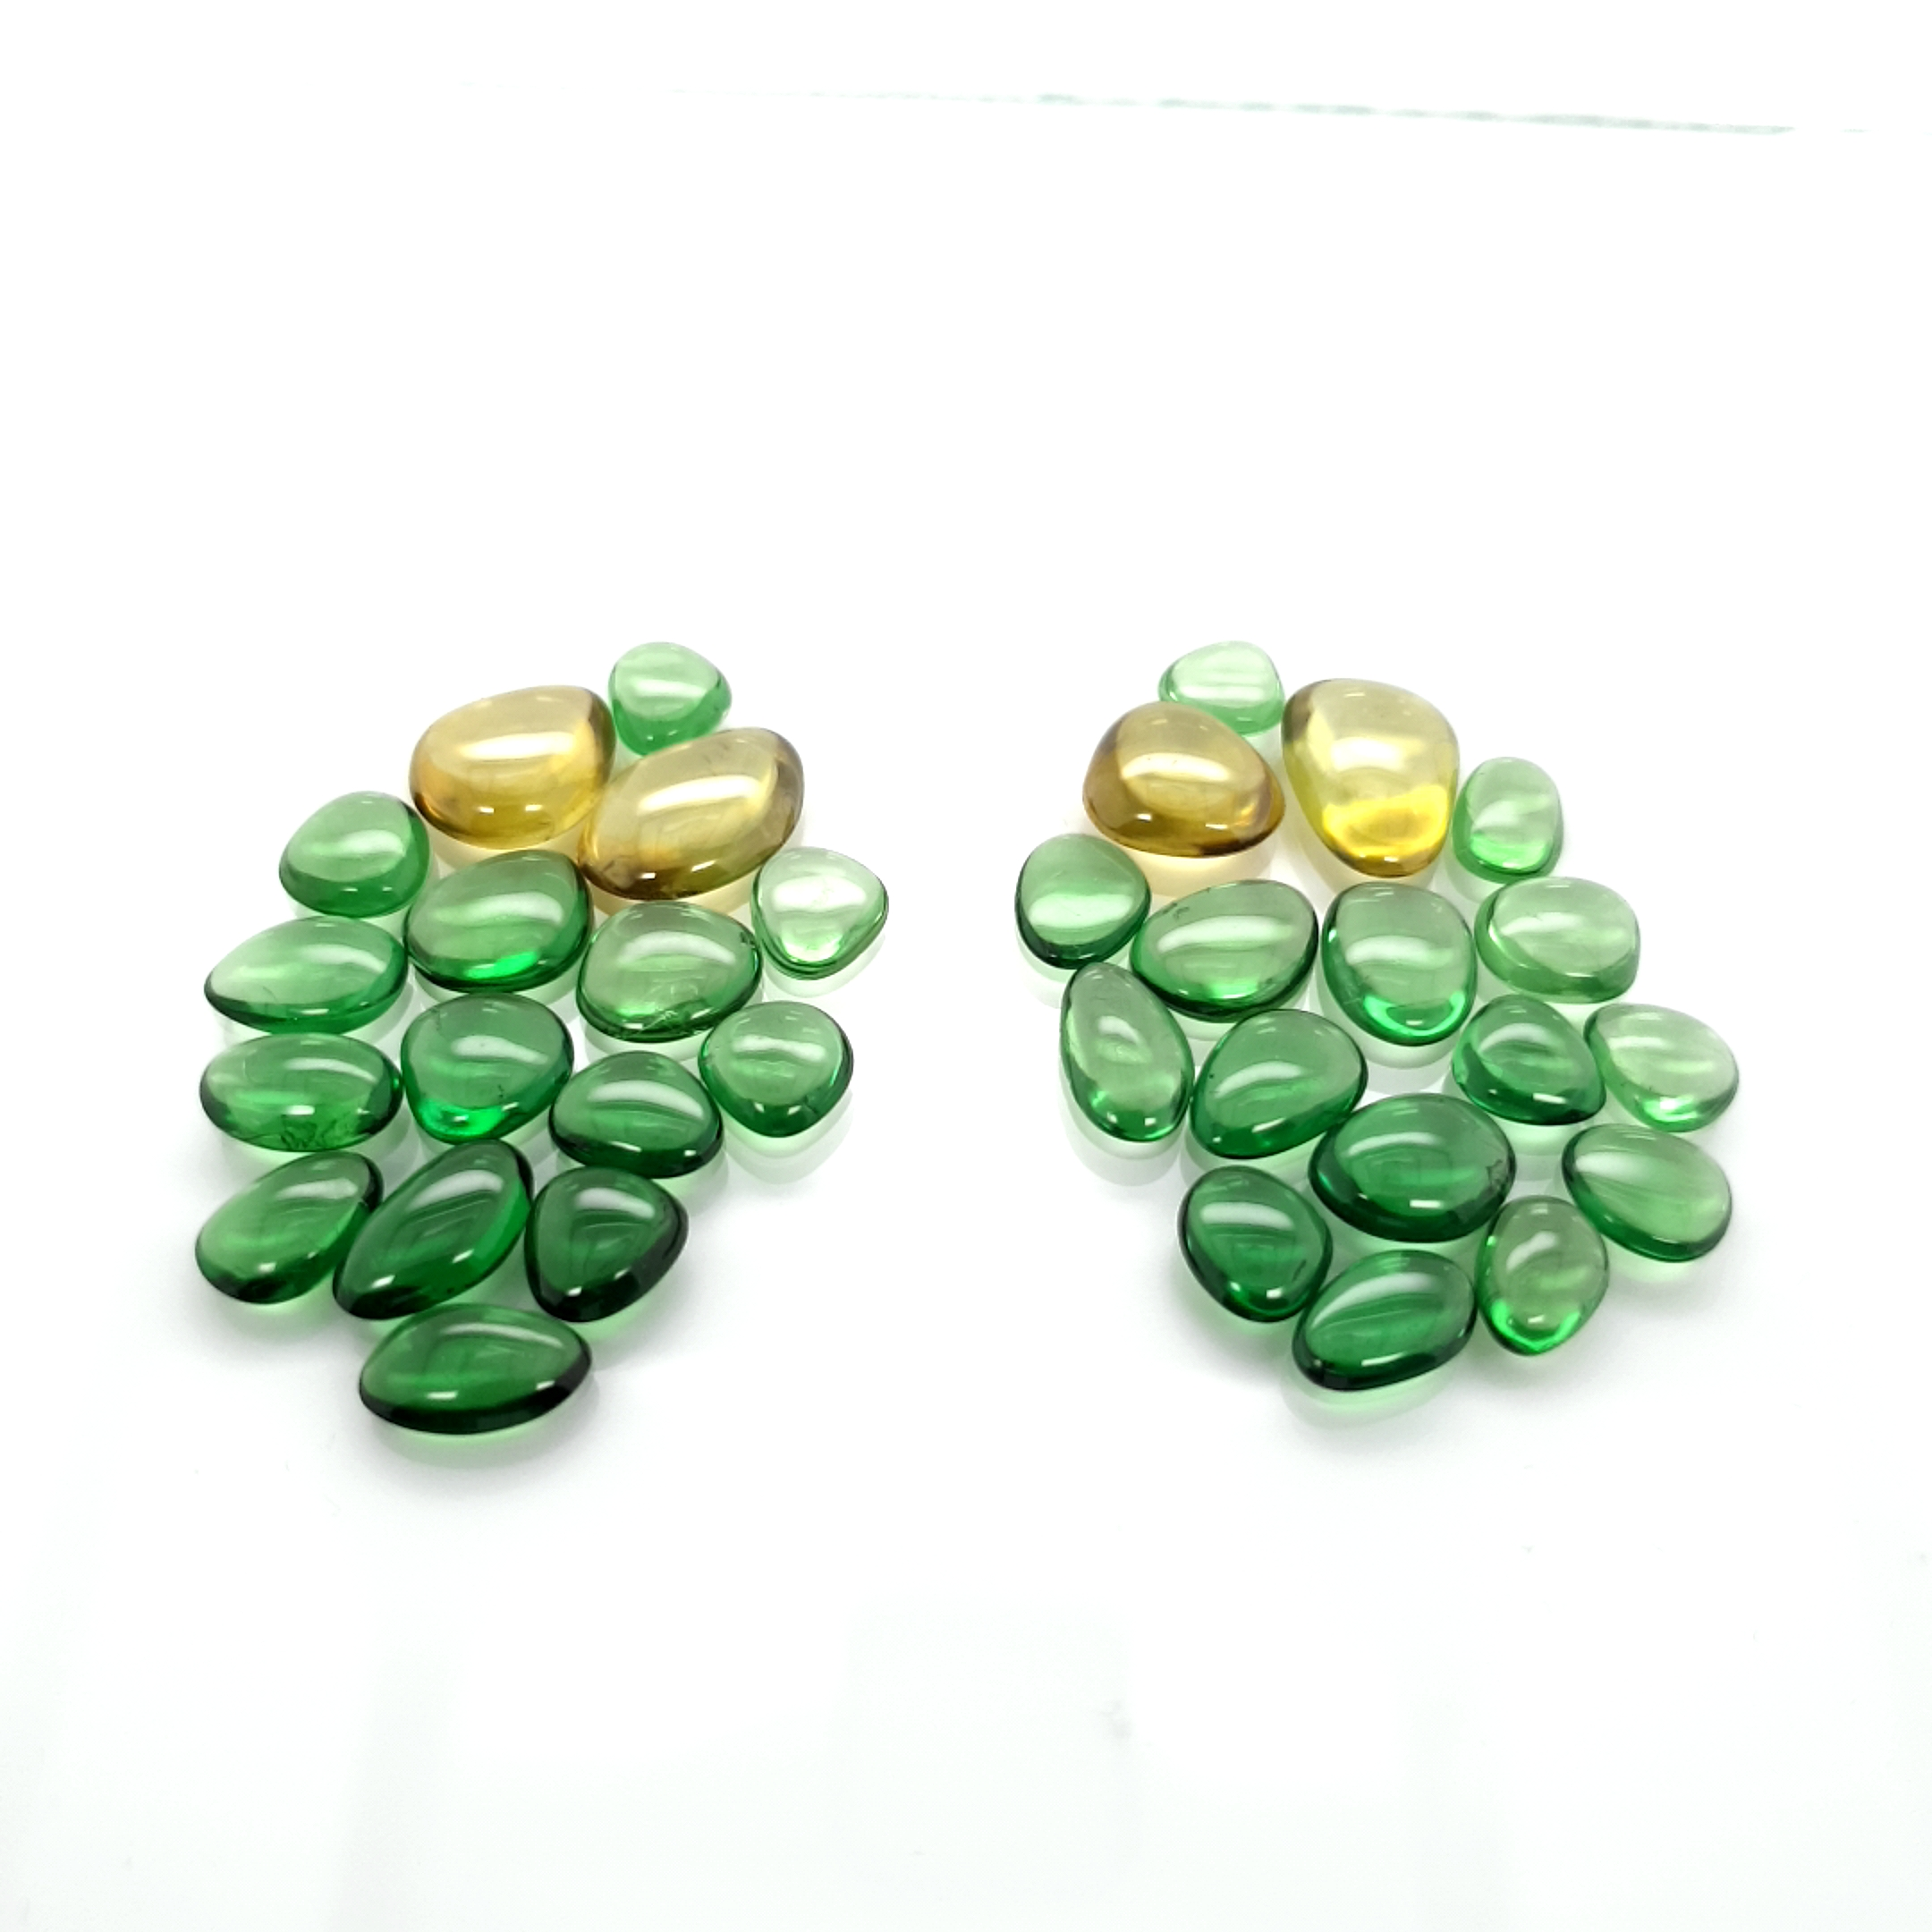 Set Fancy Cabochon Tsavorite 1-2 ct.size and Sphene 3-4 ct.size__2021-03-05-14-44-26